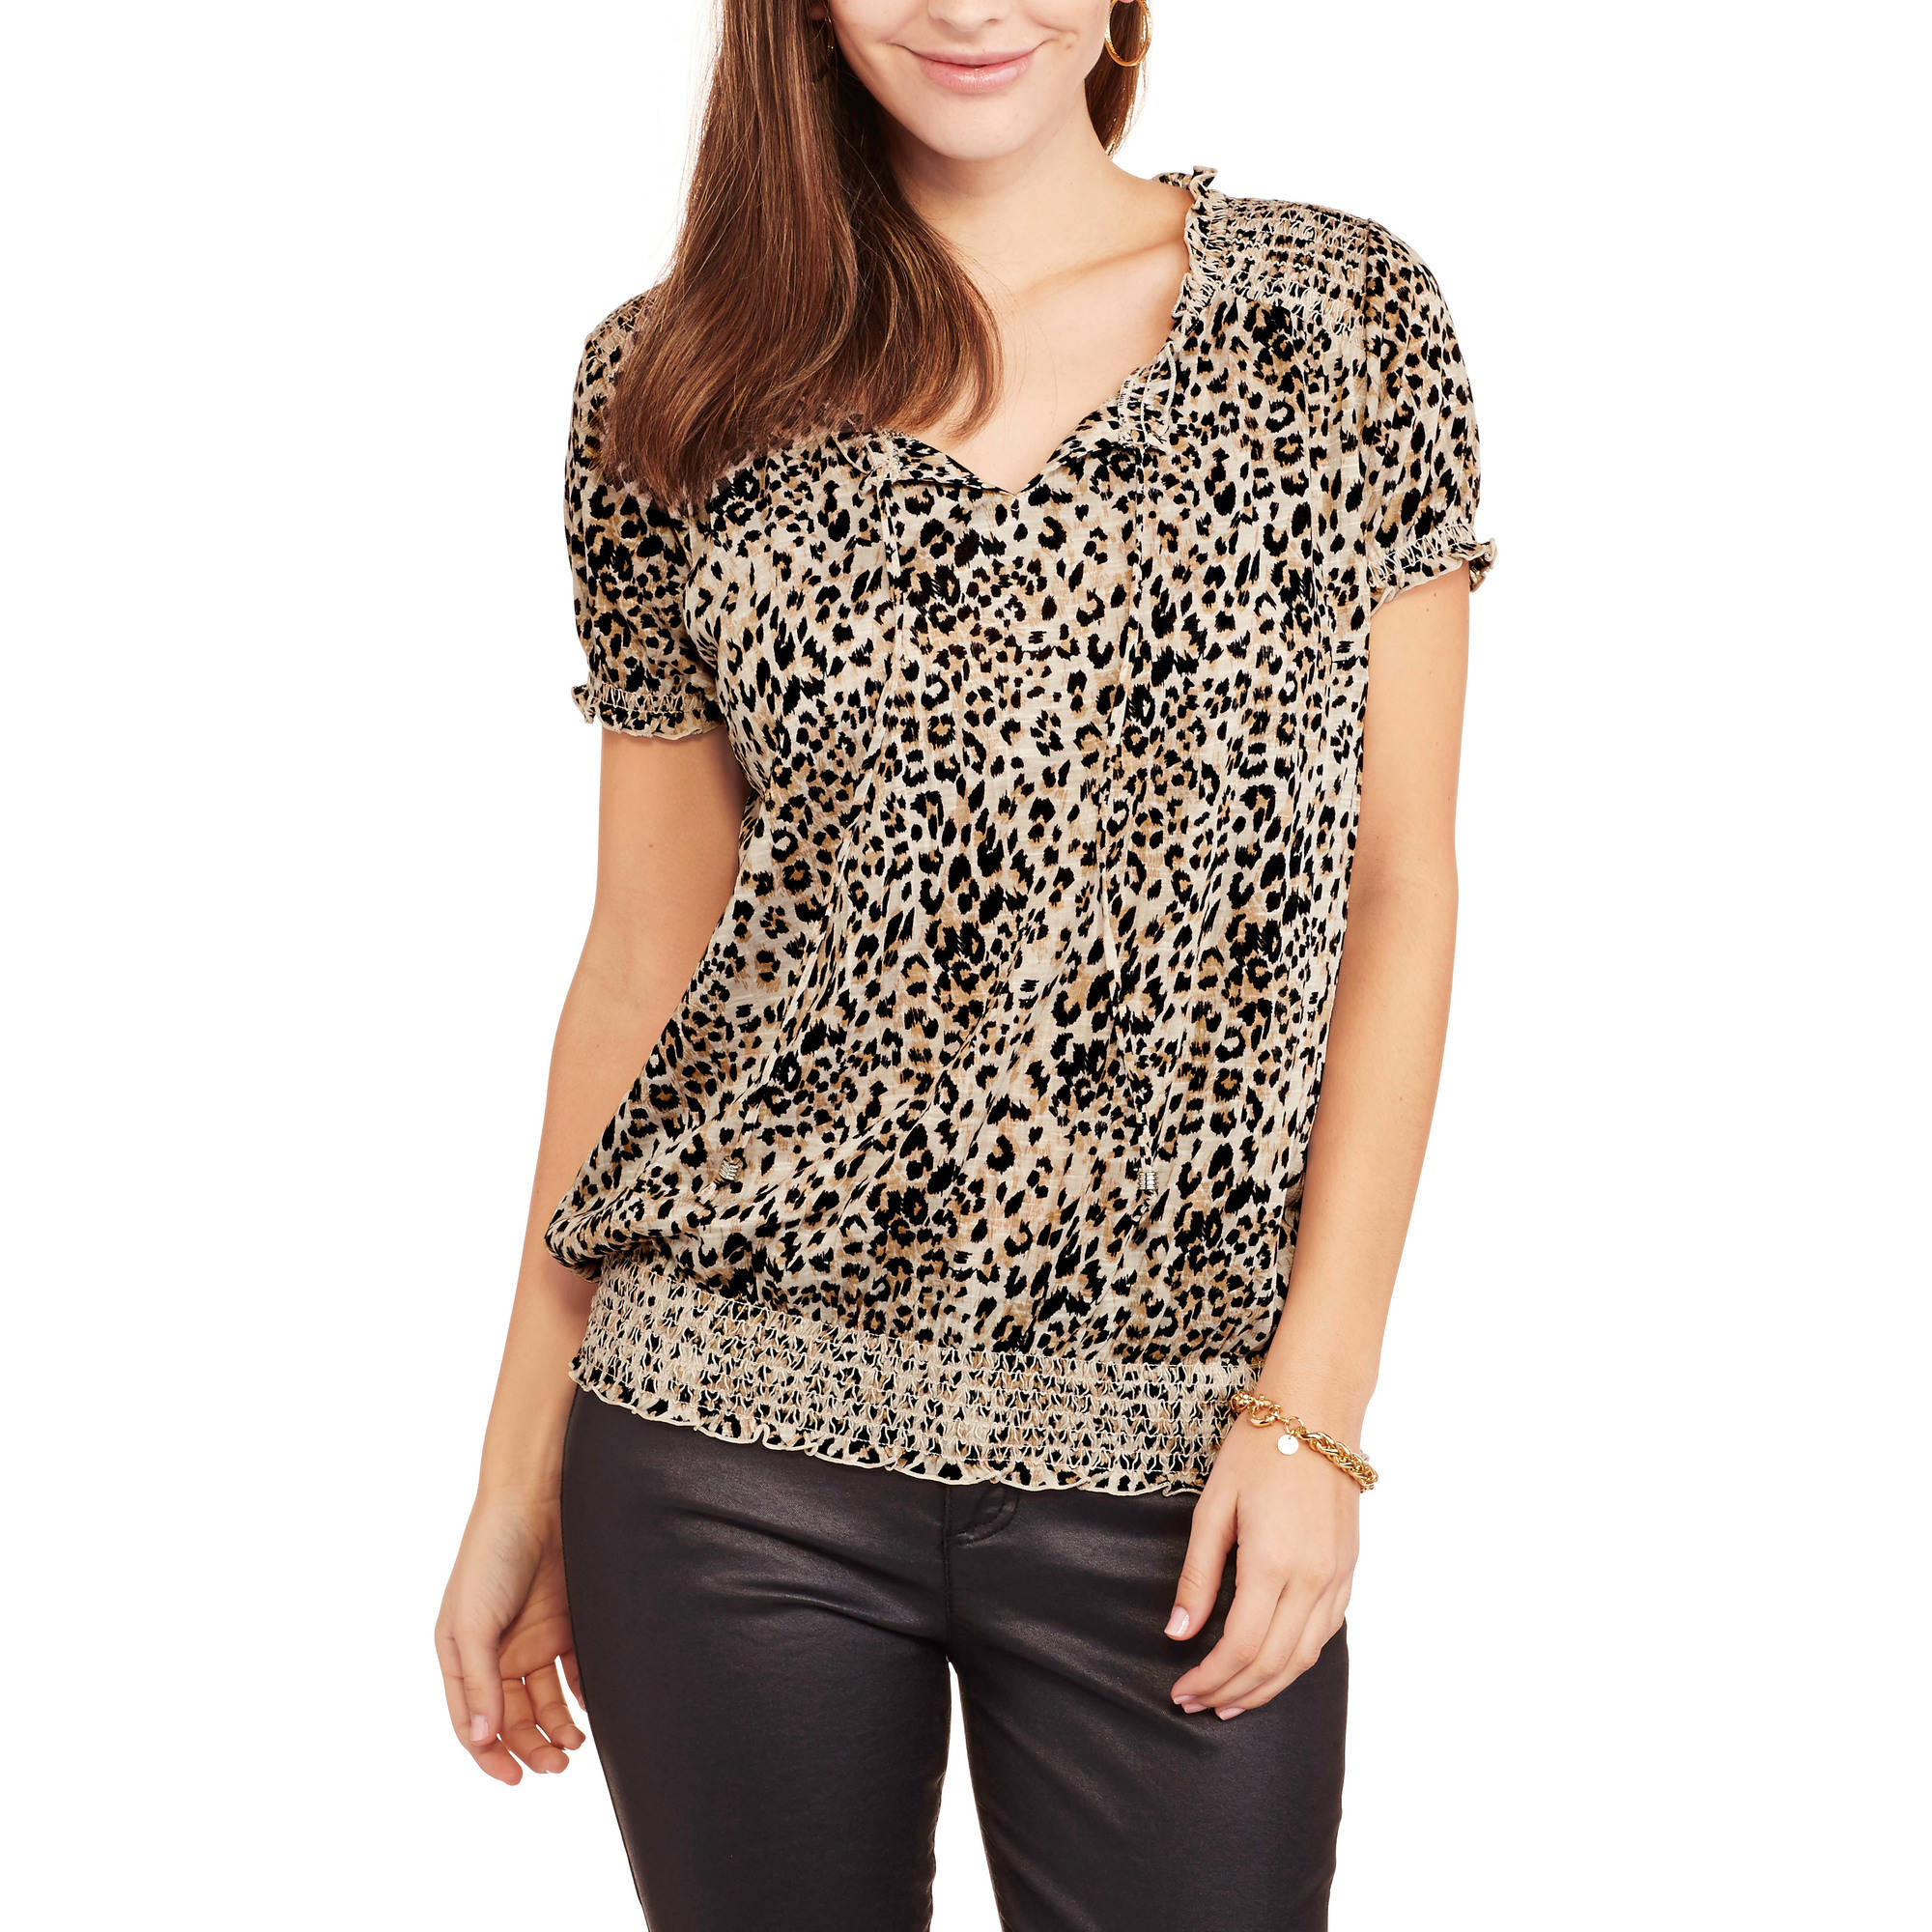 Faded Glory Women's Short Sleeve Peasant Top with Front Tassels and Elastic Waist